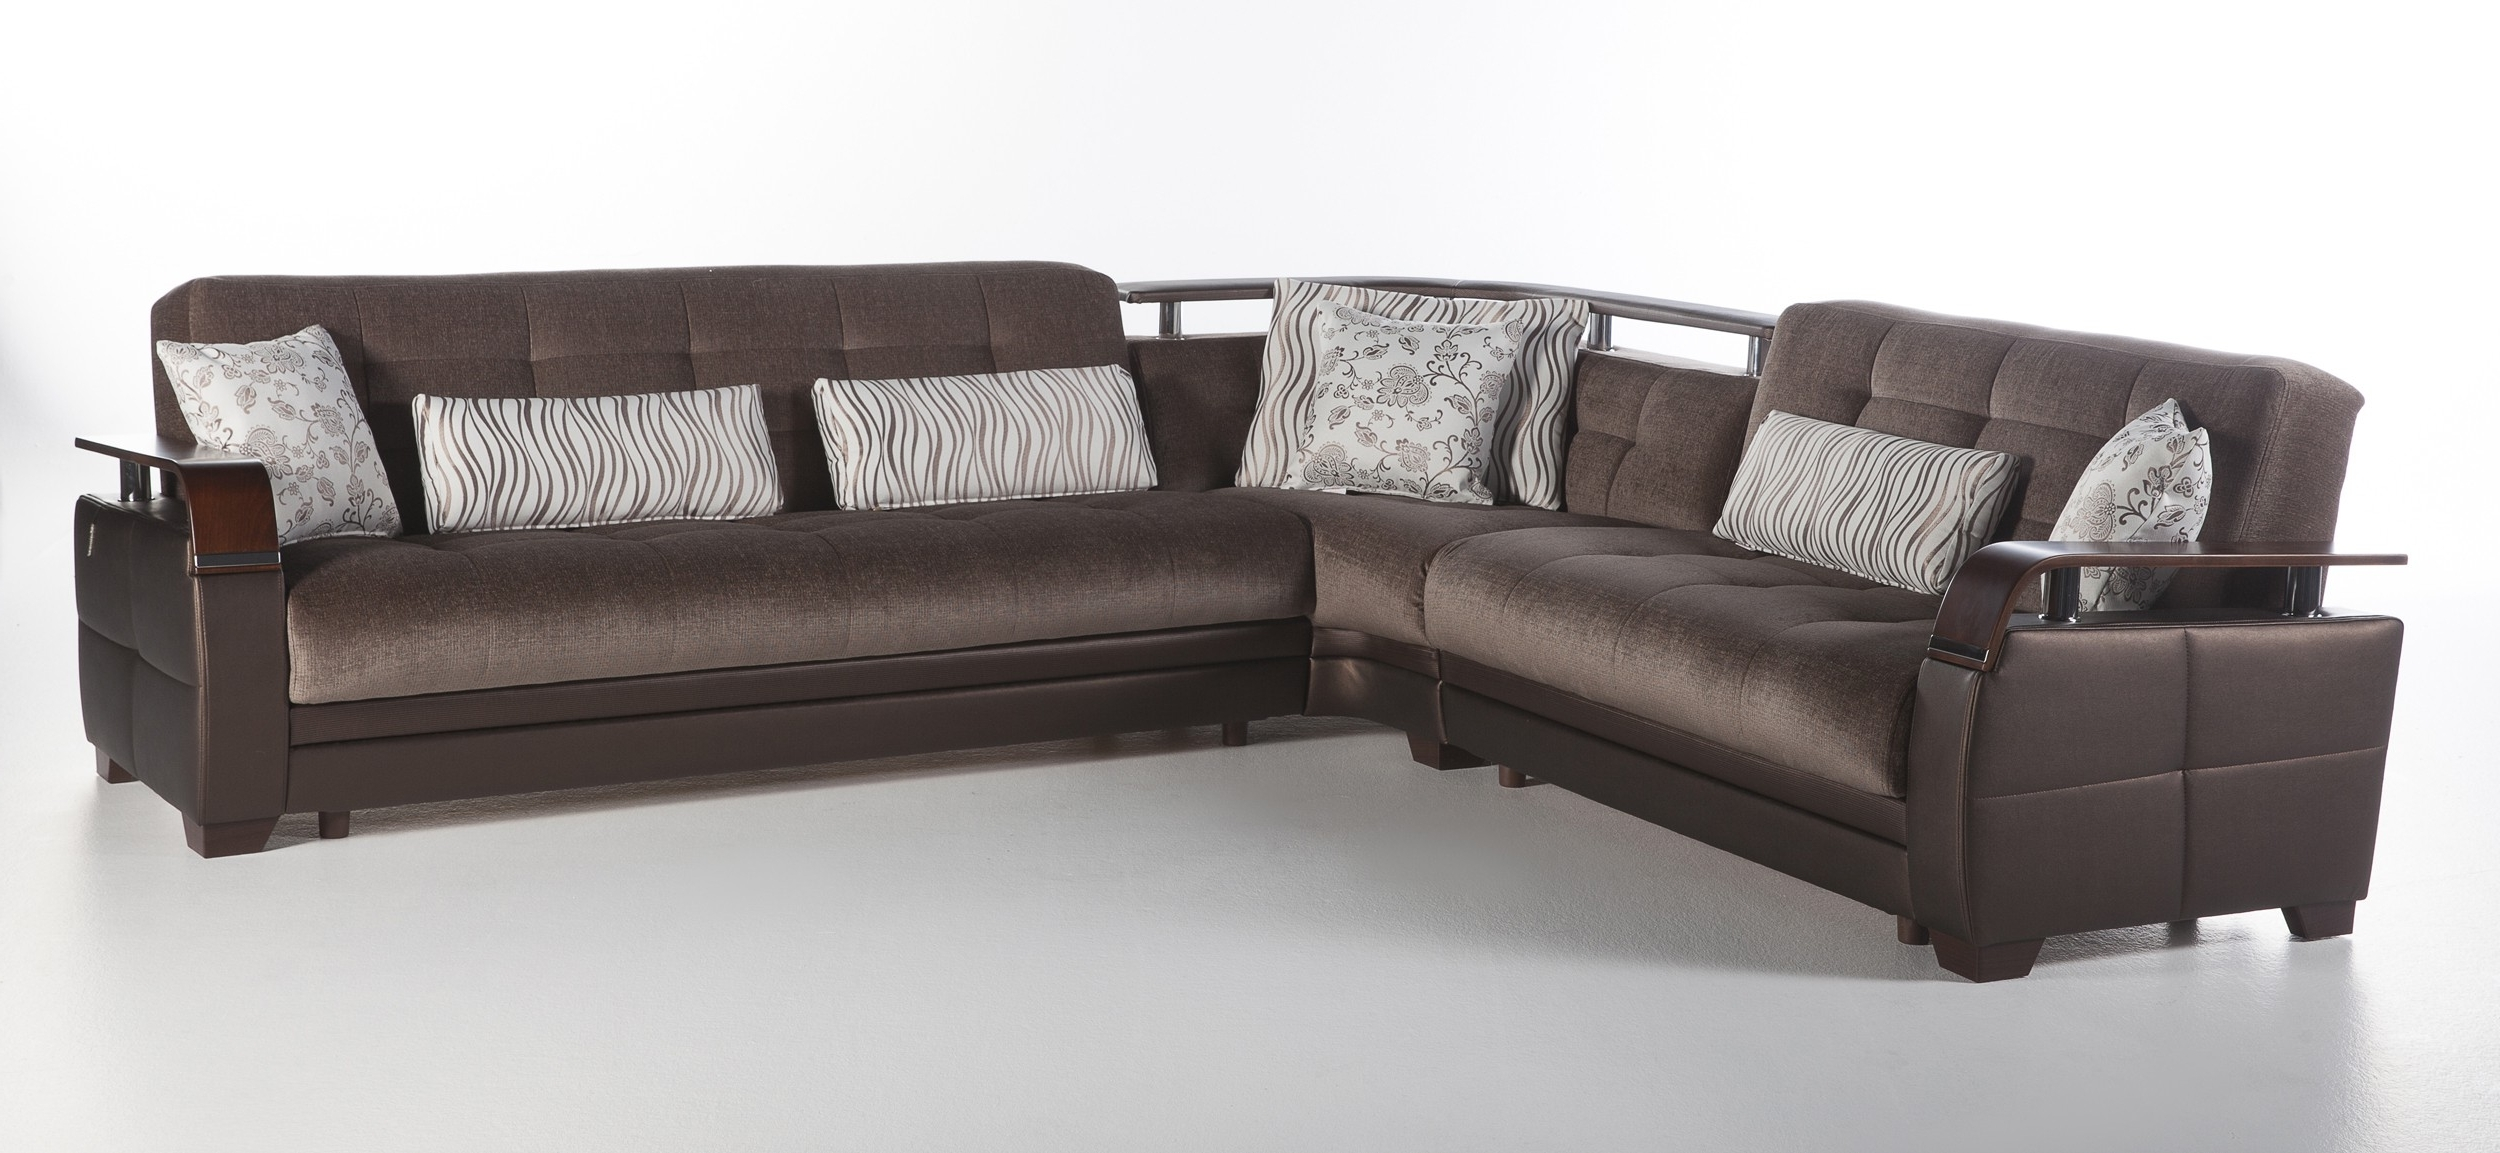 Most Popular Furniture : Natural Convertible Sectional Sofa In Prestige Brown For Convertible Sectional Sofas (View 17 of 20)